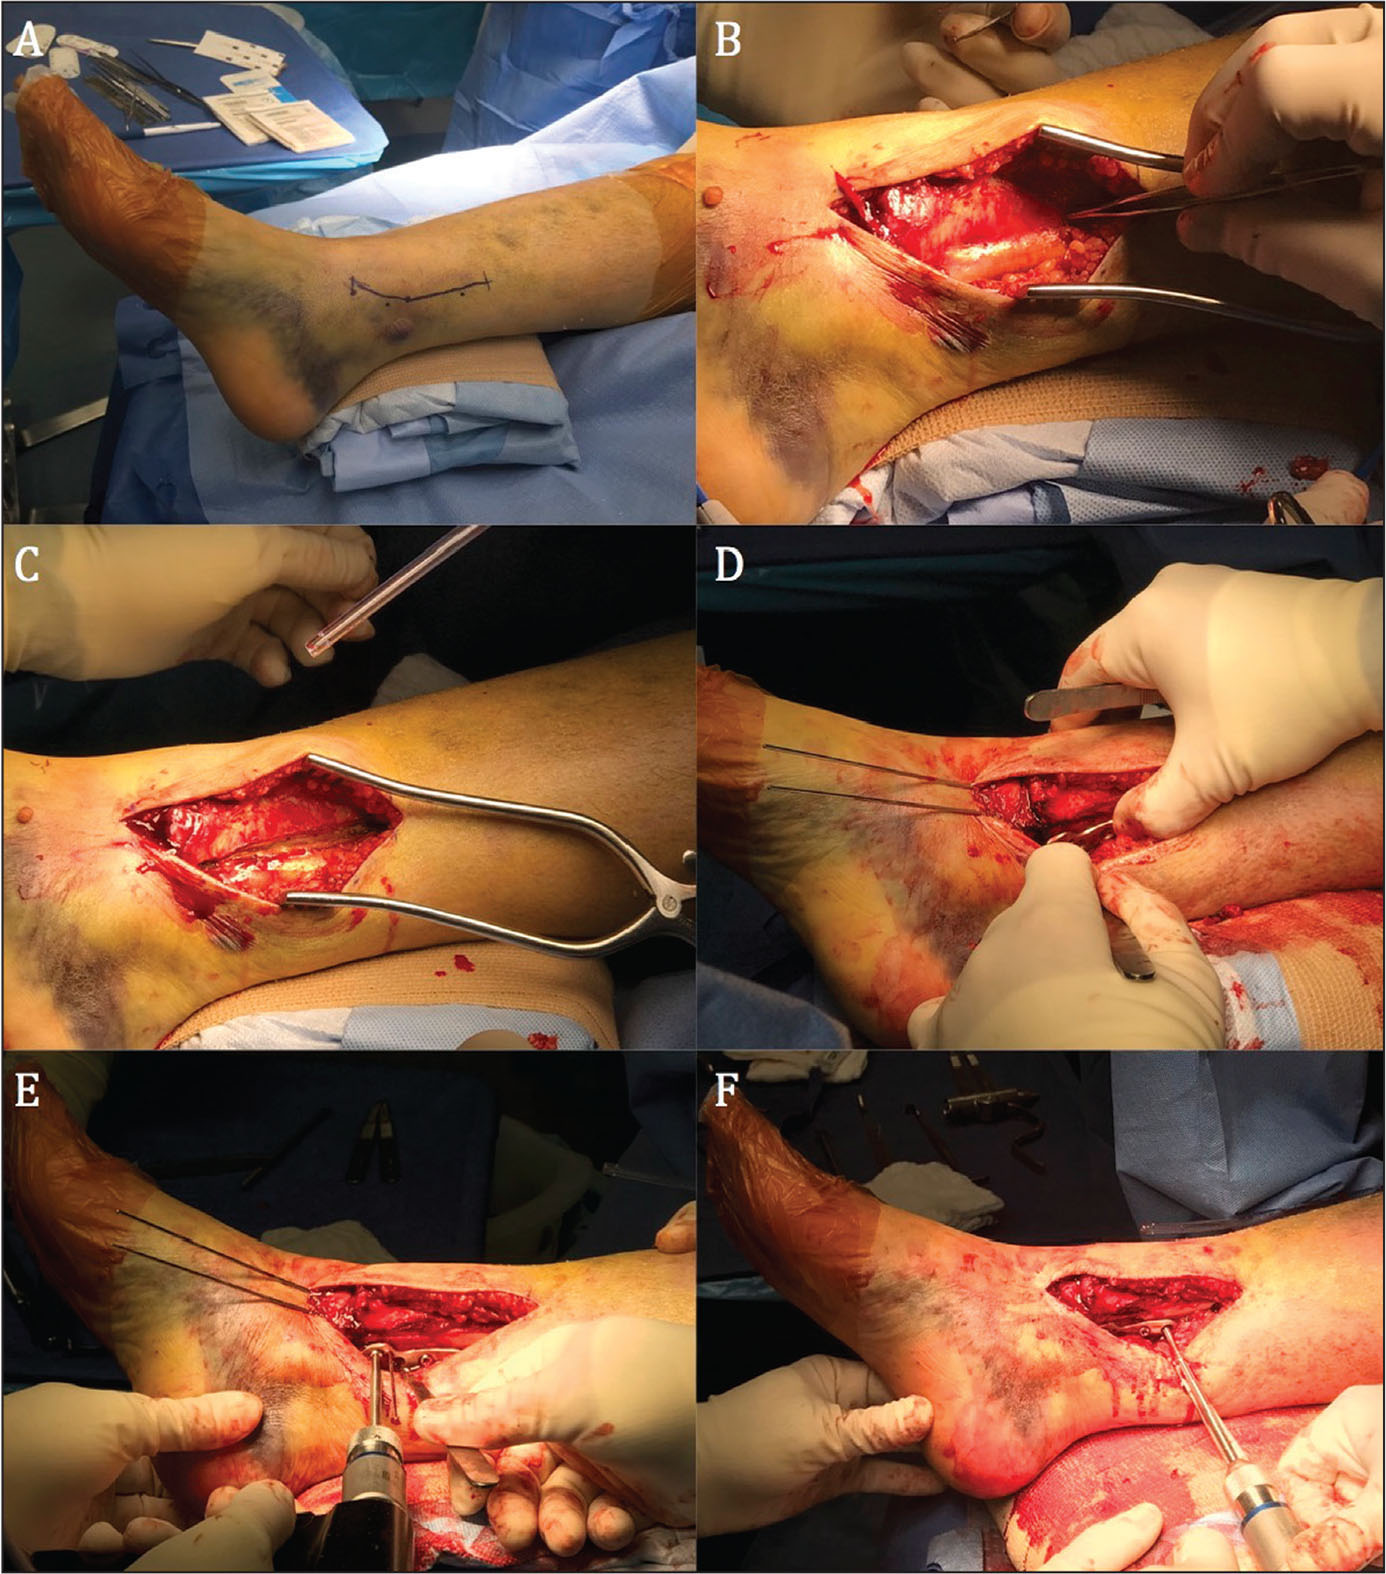 Intraoperative photographs of open reduction and internal fixation of a posterior malleolus fracture via a posteromedial approach. The patient is supine on the operating room table. A posteromedial incision is made 6 cm above the ankle joint and curves around the posterior aspect of the medial malleolus (A). Dissection is carried down to the interval between the saphenous vein and the tibialis posterior tendon (B). The tendon is released and retracted posteriorly. A plate is then selected and applied on the posteromedial surface of the tibia (C, D). Under direct visualization of the fracture, posterior to anterior screws are implanted through the plate (E, F).